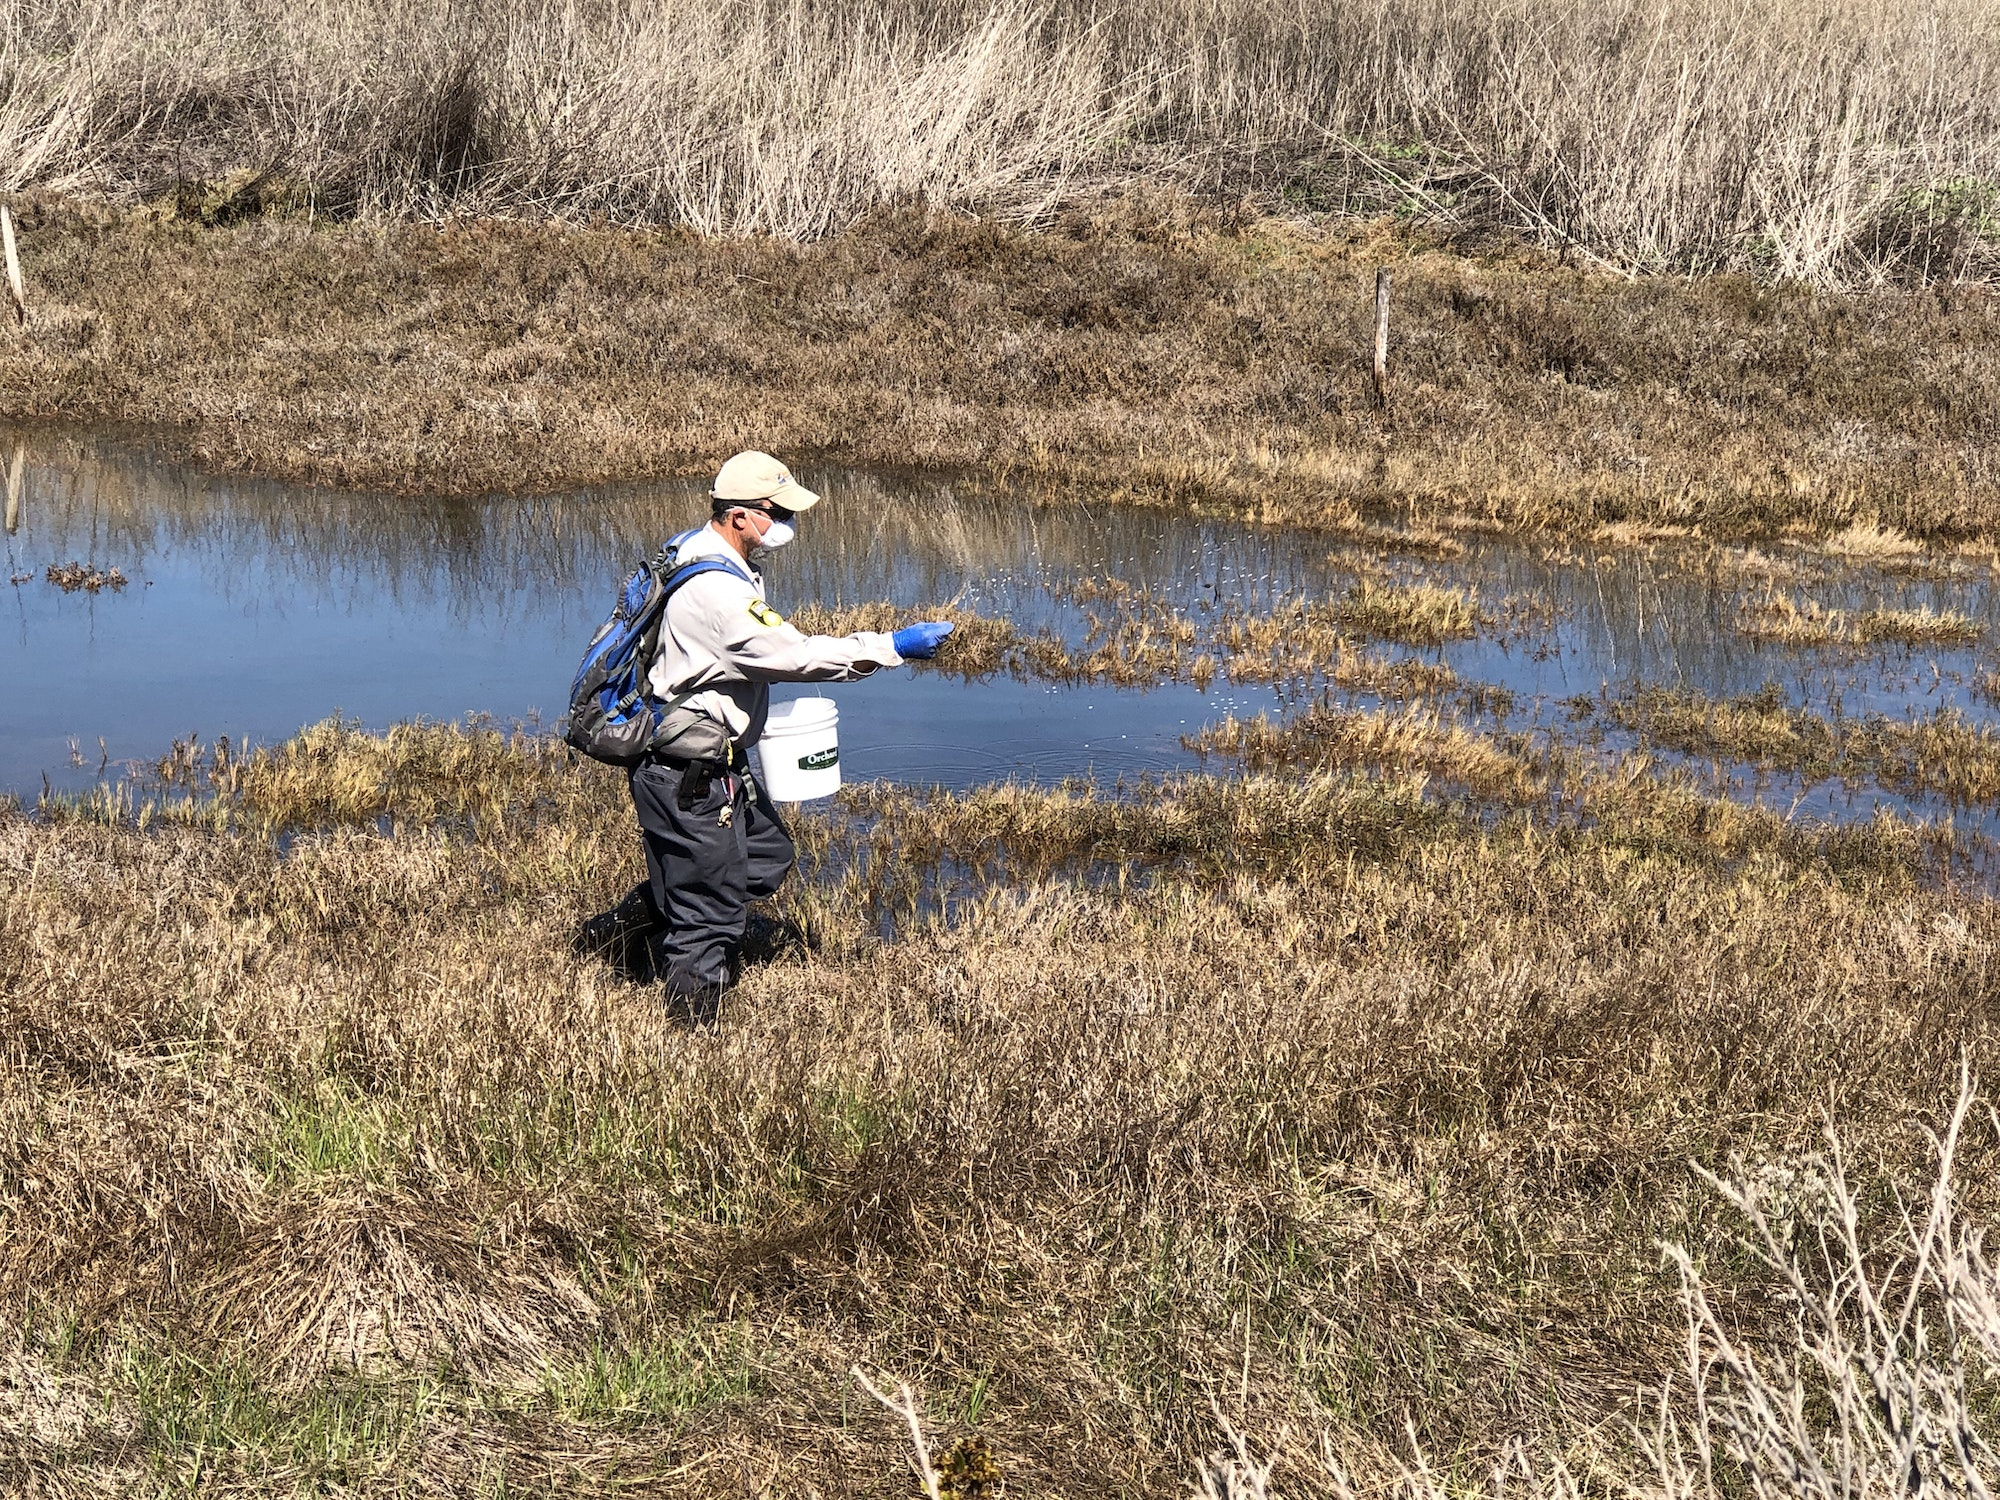 Person is standing in a marsh with water and brown-and-green plants.  Person is wearing a tan and grey uniform with a cap.  Person has a backpack and white pail, and is wearing face mask and gloves while throwing pesticide.